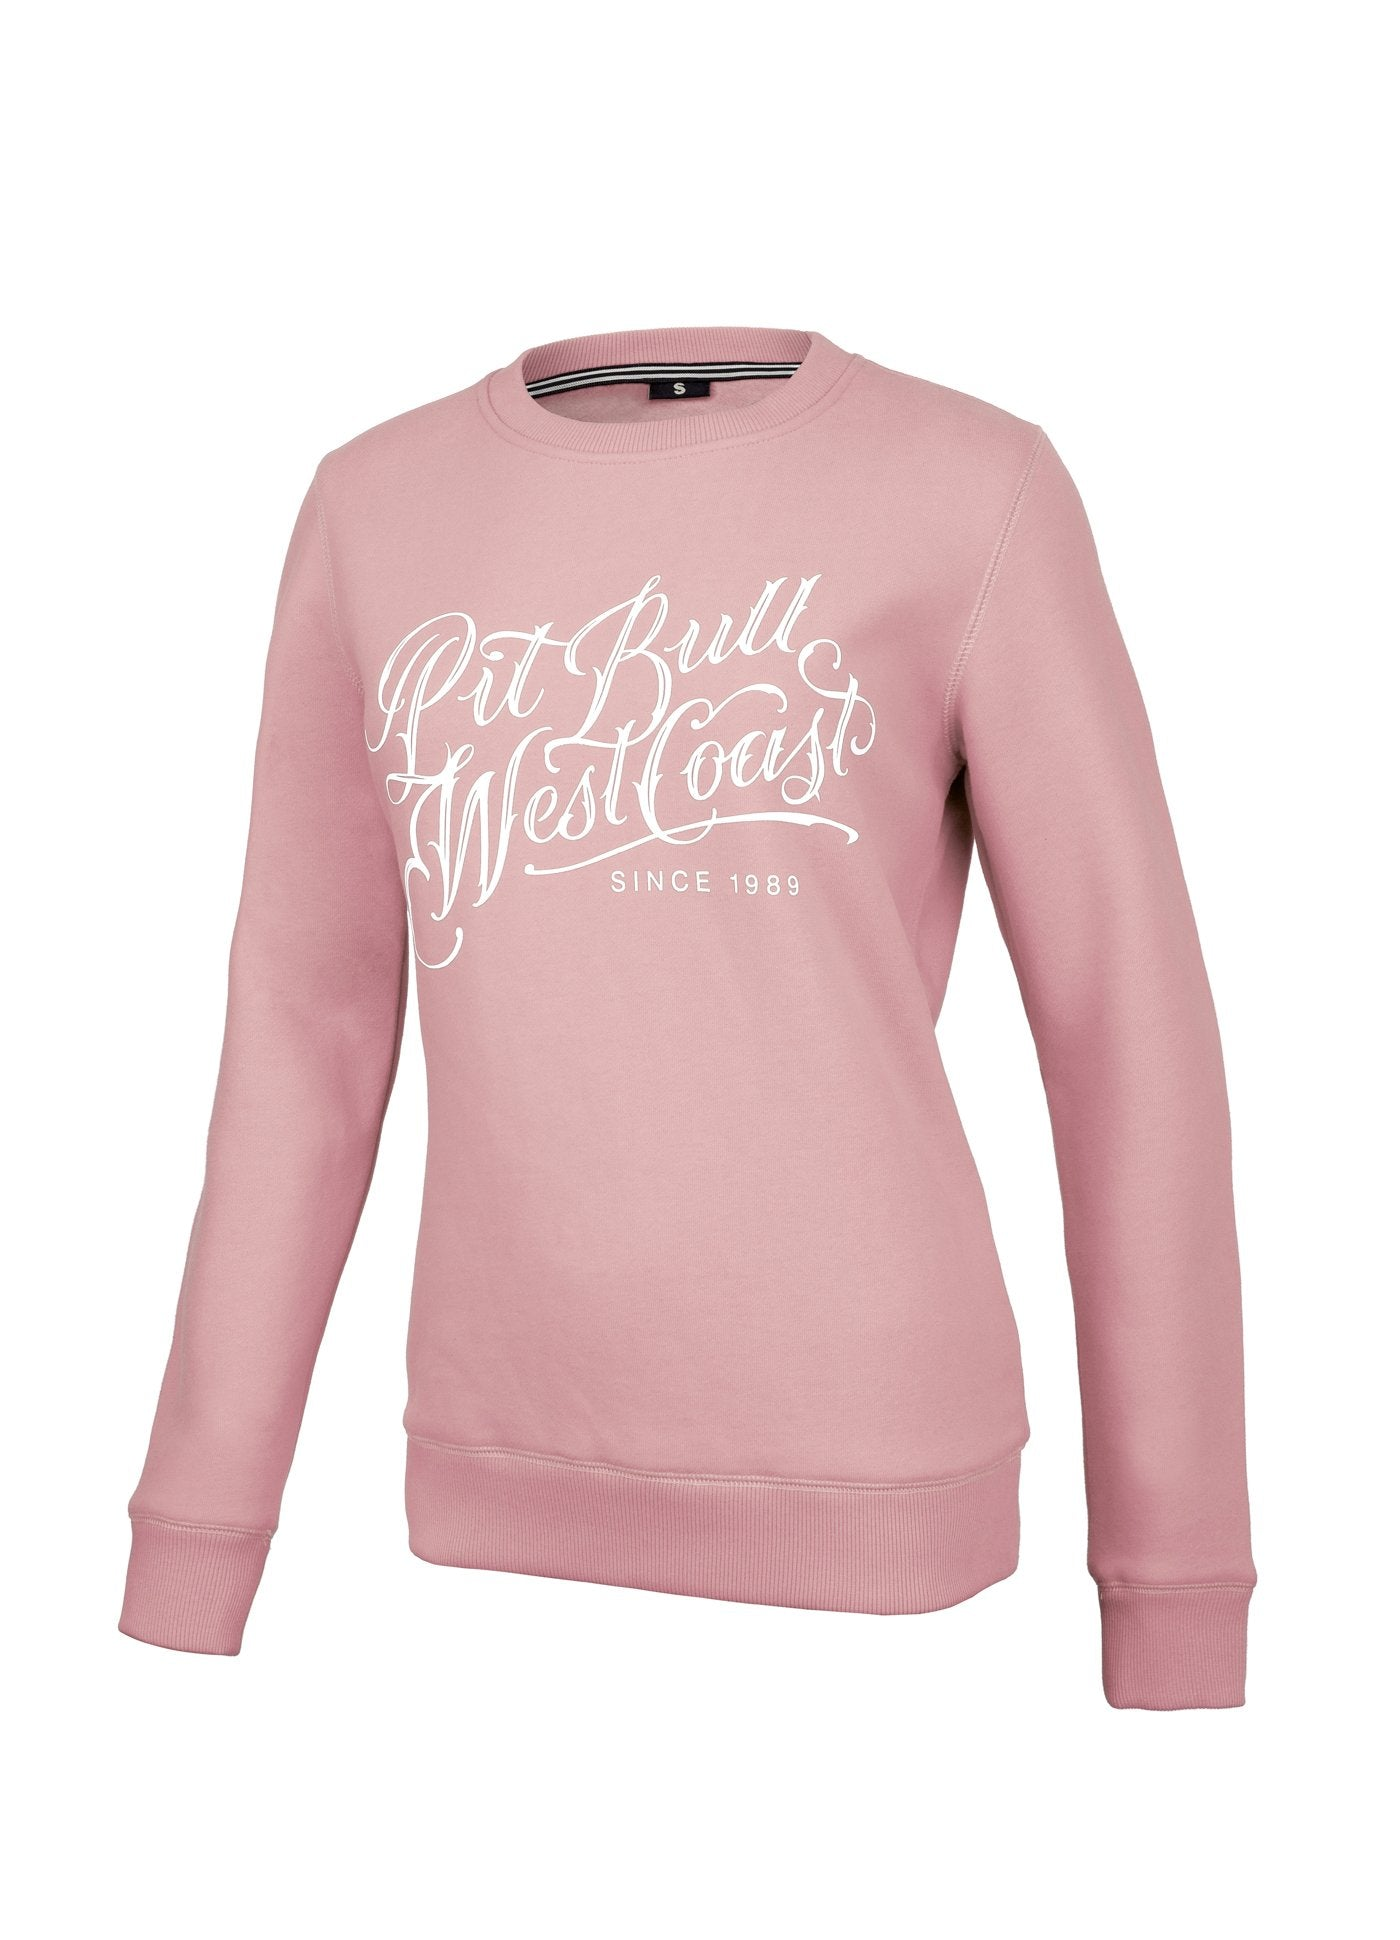 Women Crewneck Blackshaw Pink - Pitbull West Coast U.S.A.